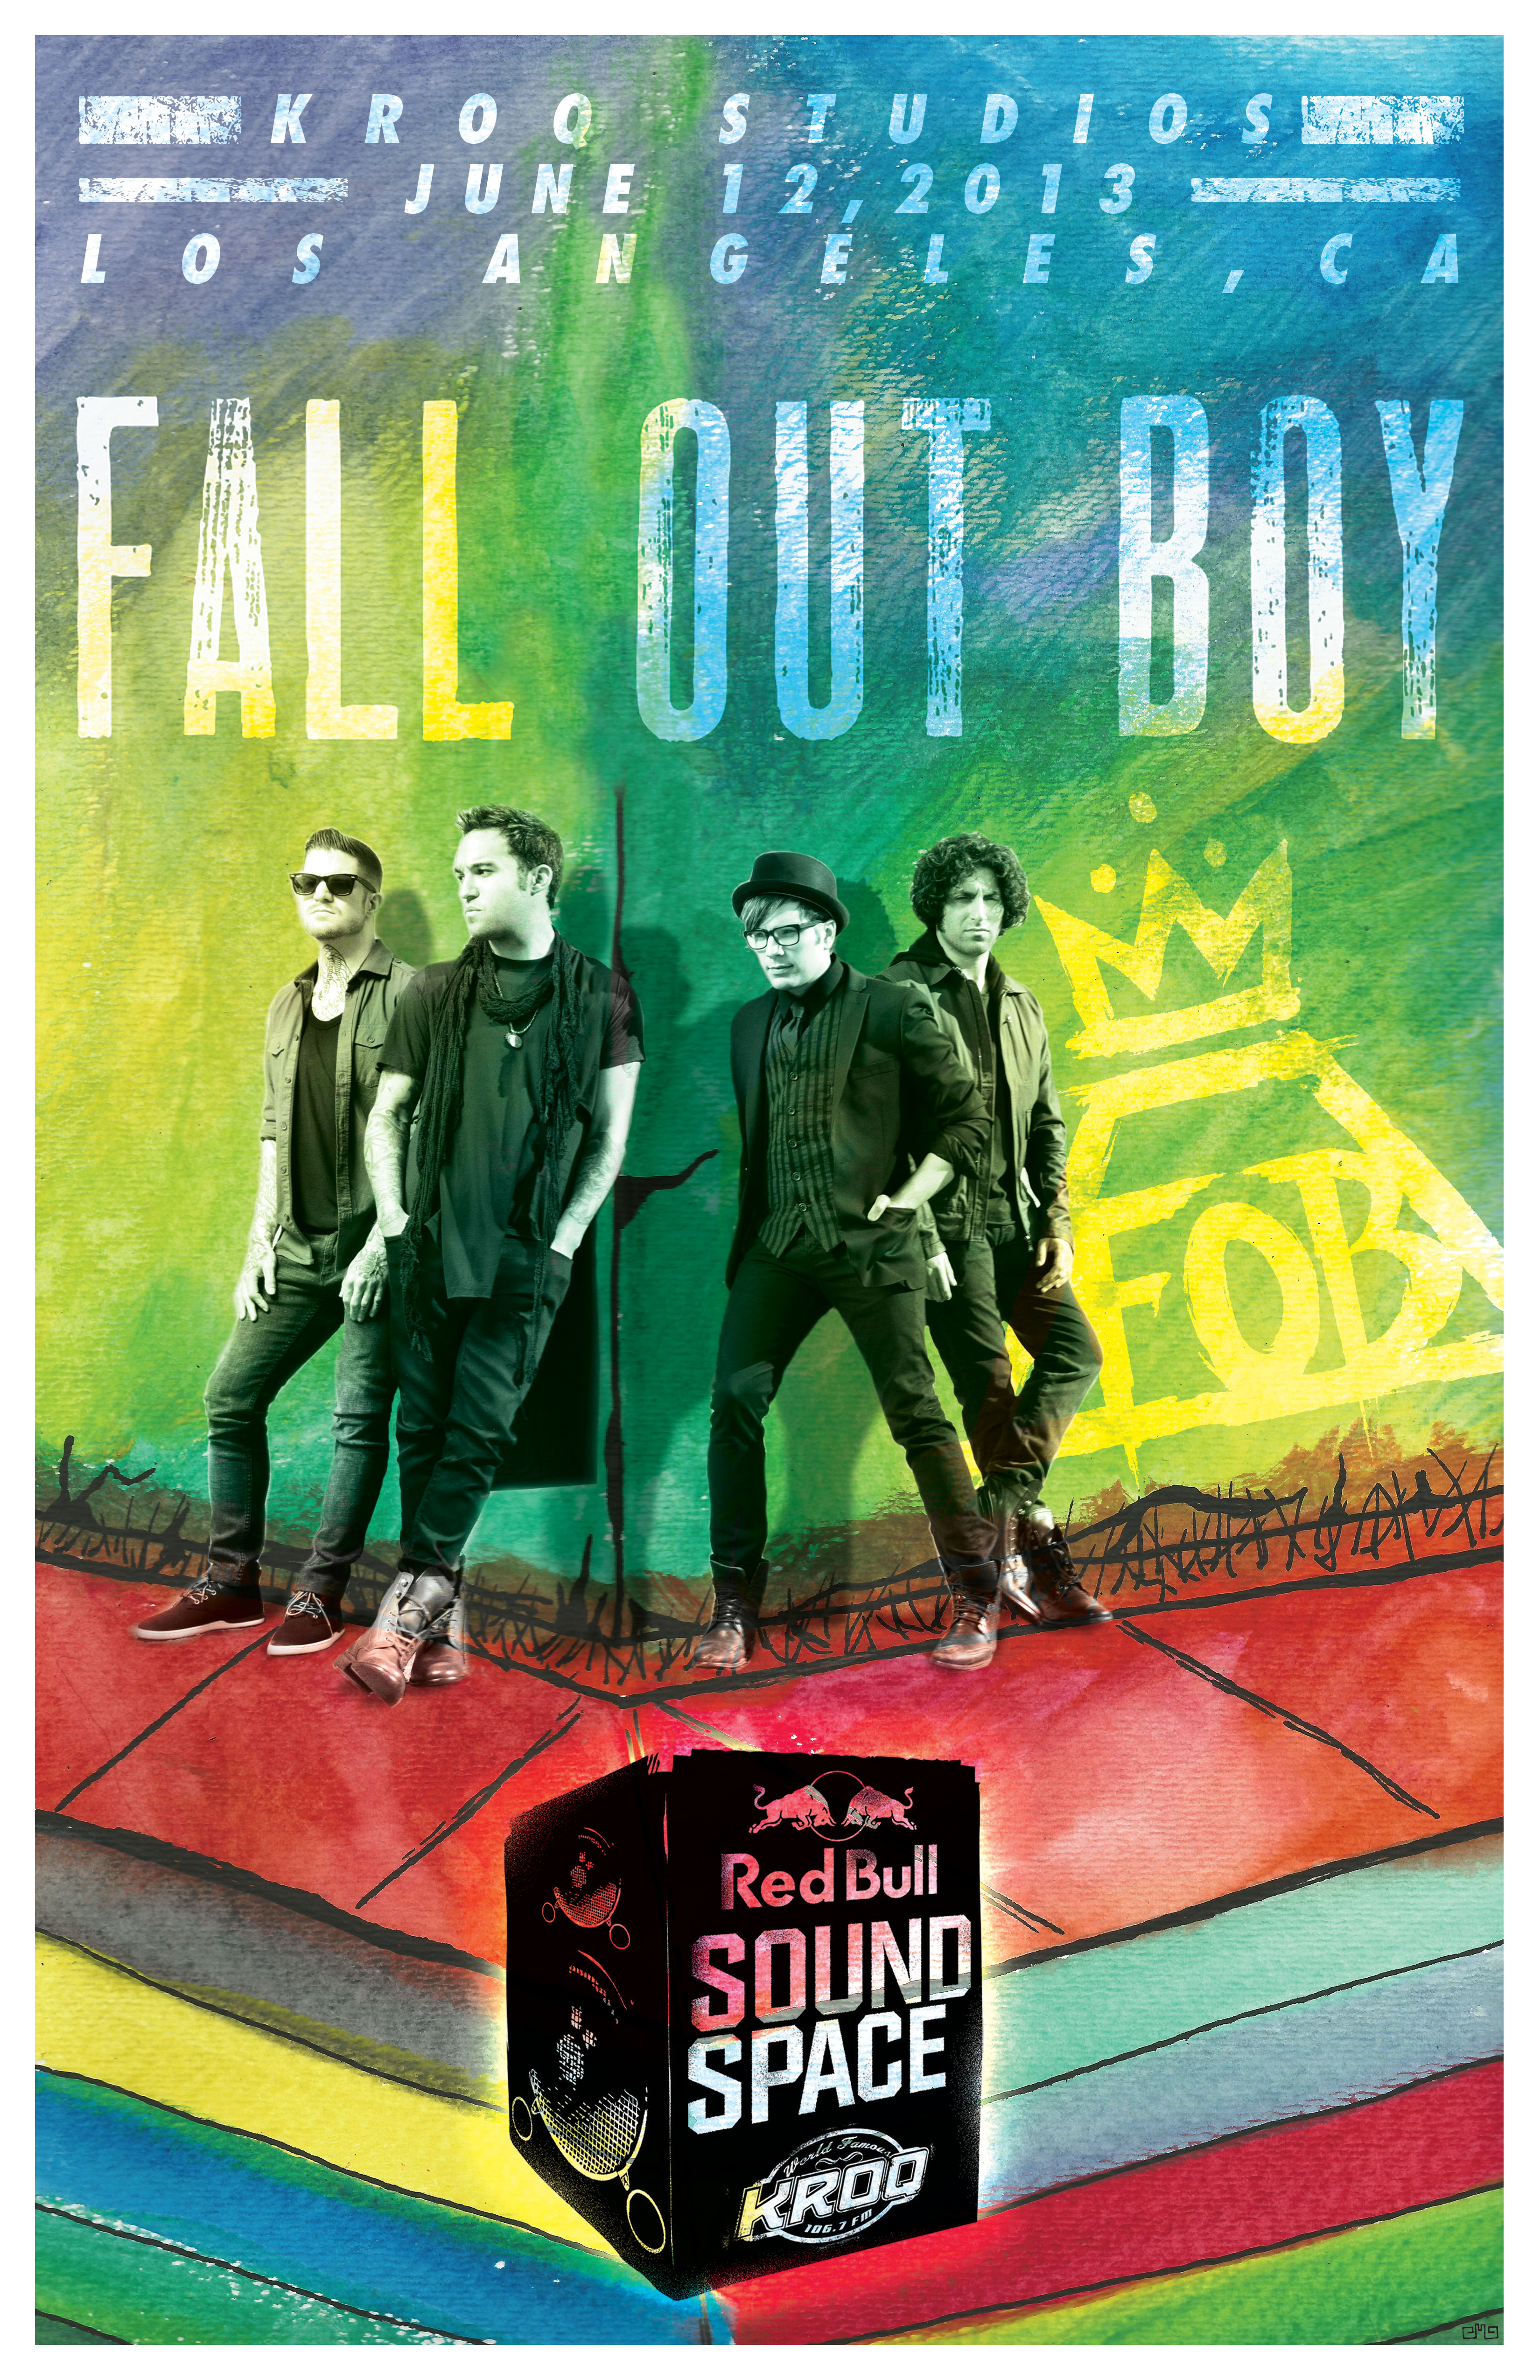 130612-FOB_sound_space_poster_FLAT.jpg